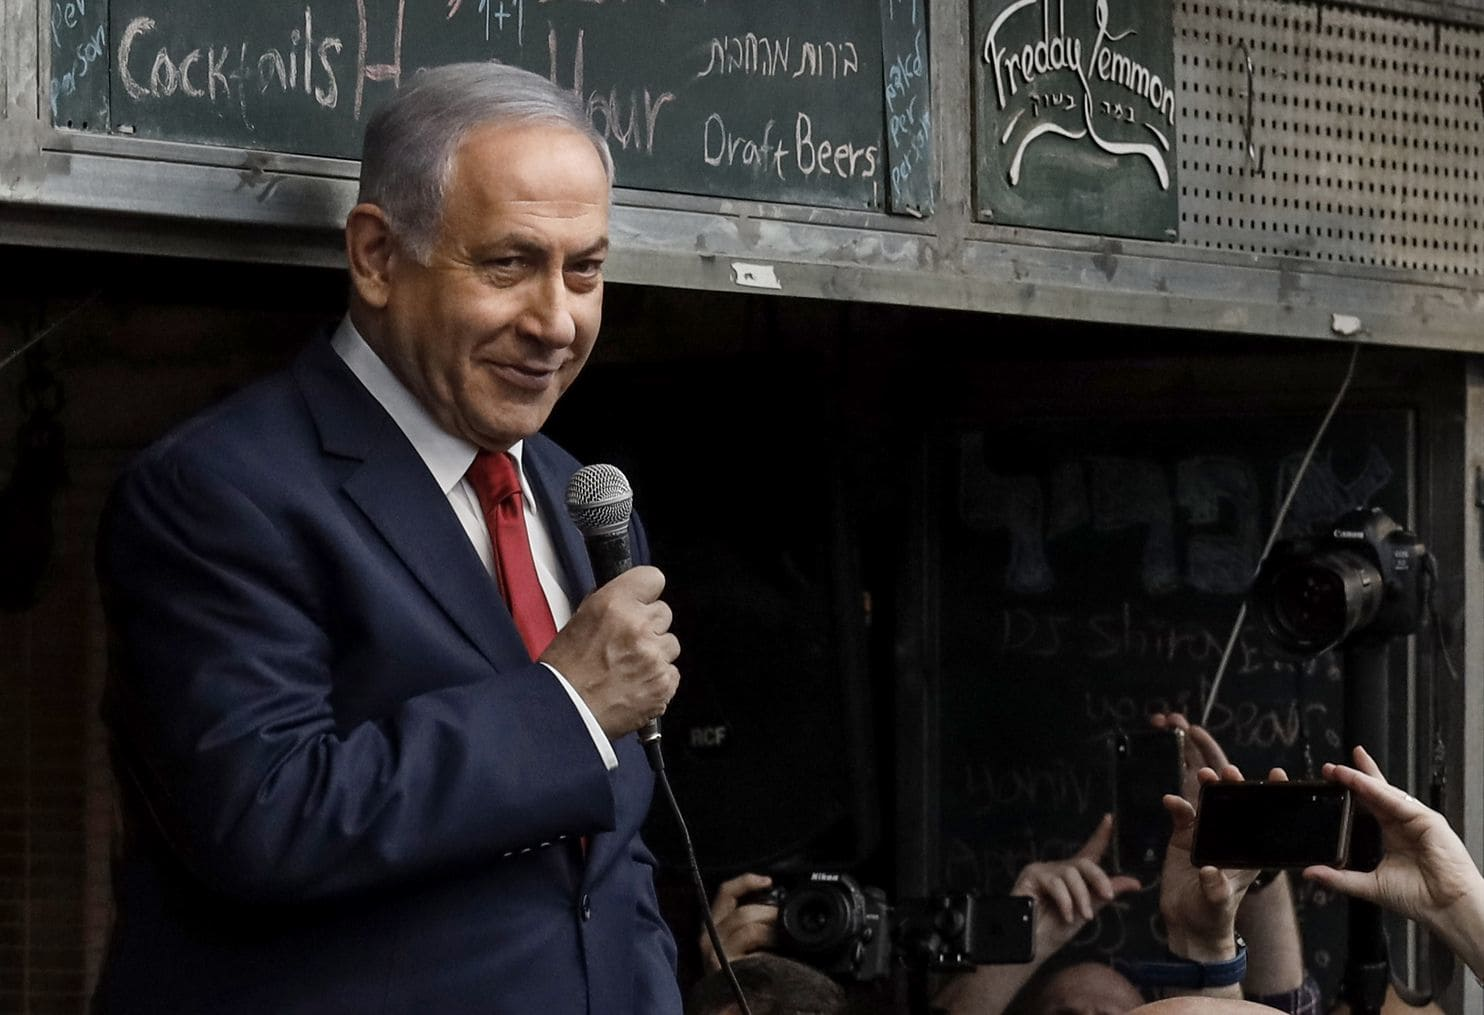 Netanyahu Is Crossing Every Red Line. He Must Go.